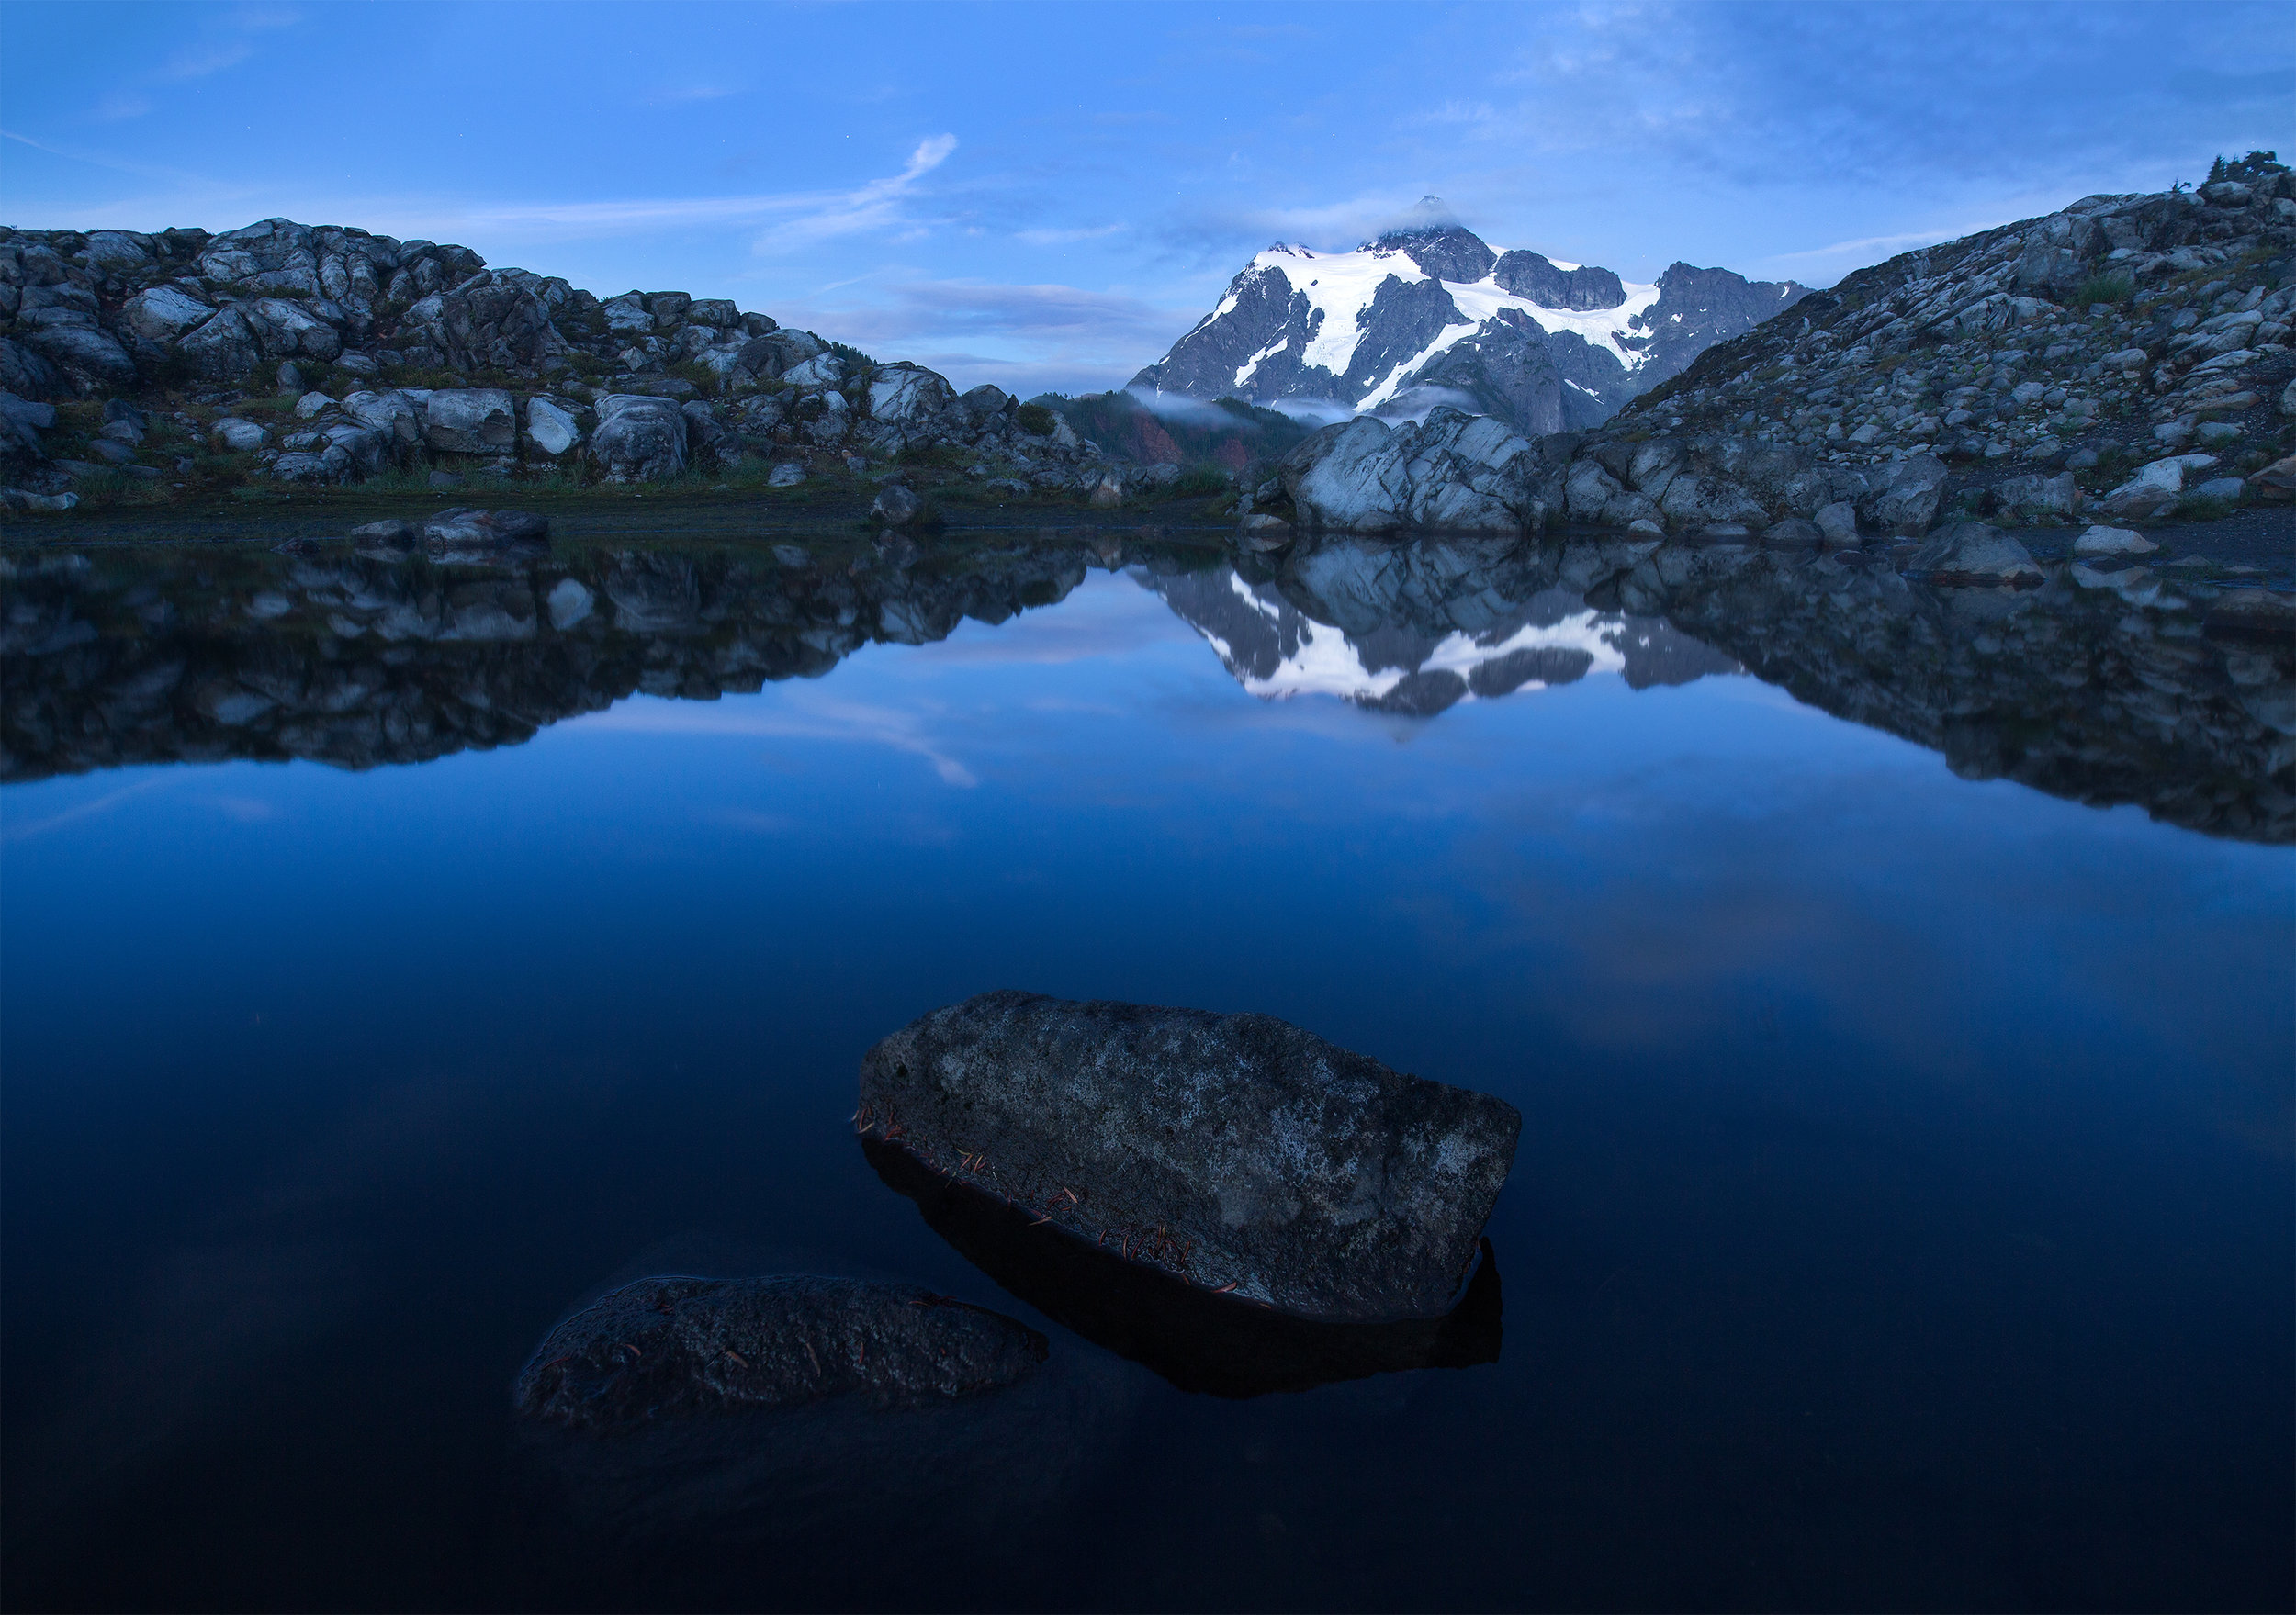 Mount Shuksan during blue hour, reflected in a pond near Arist Point.